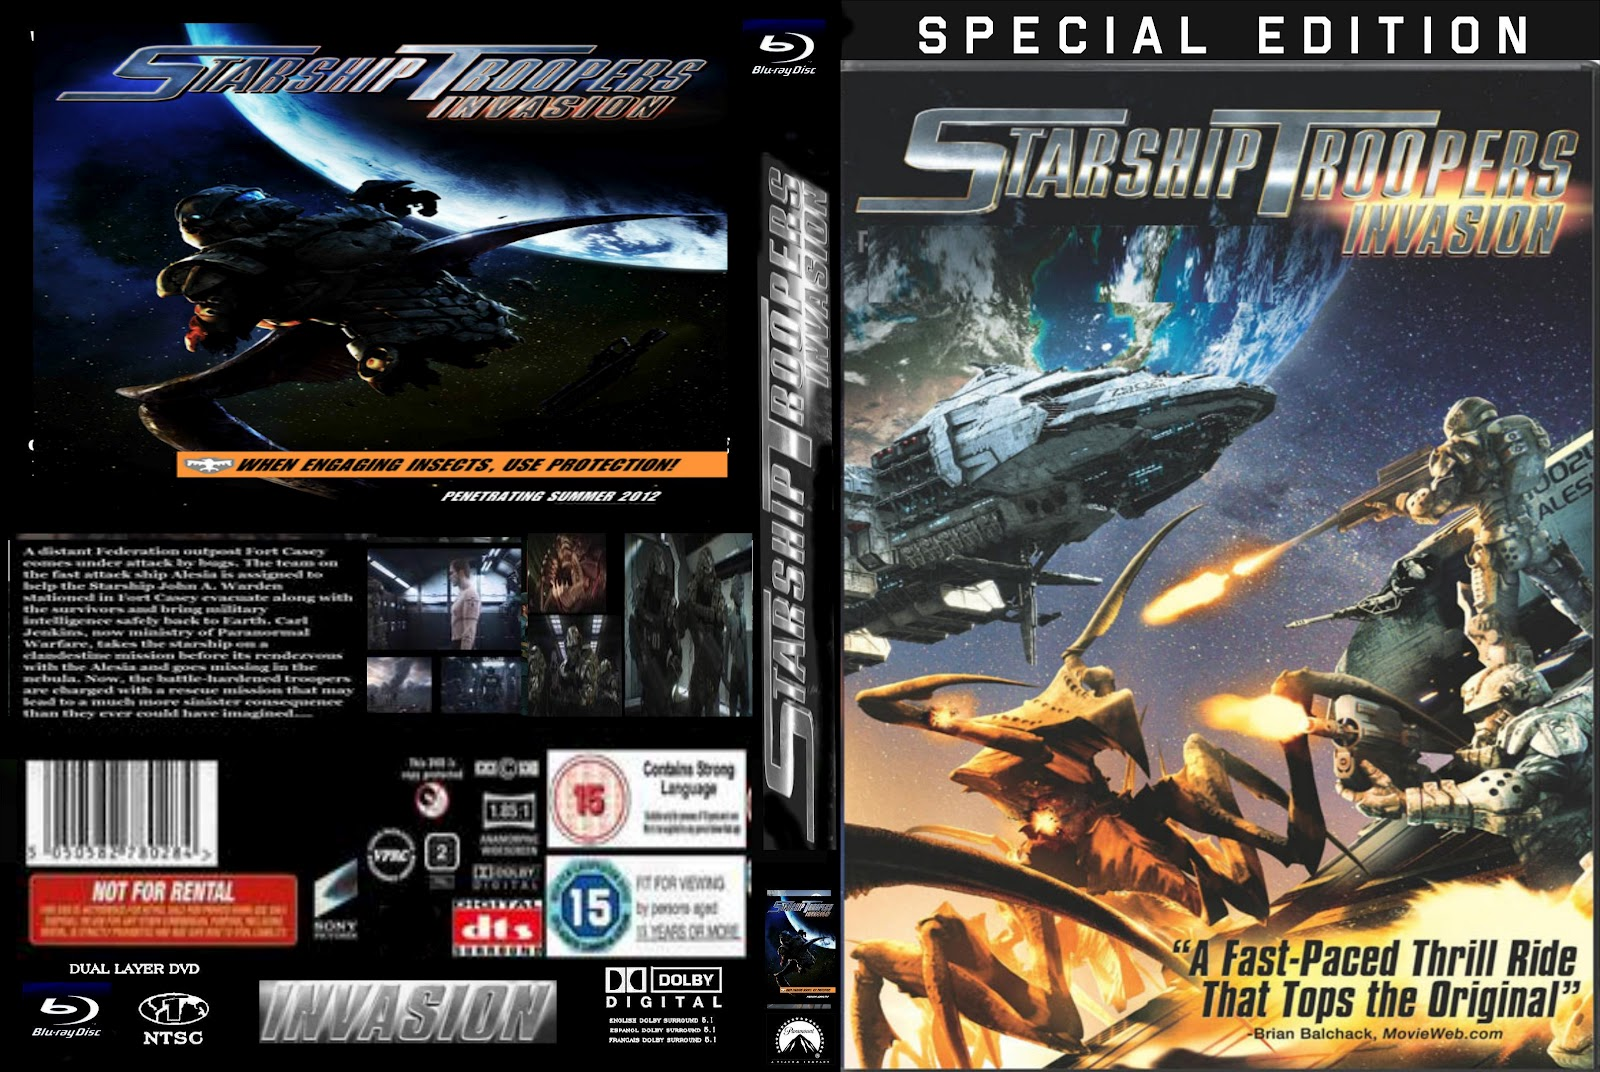 Starship Troopers: Invasion Photos - 379.2KB